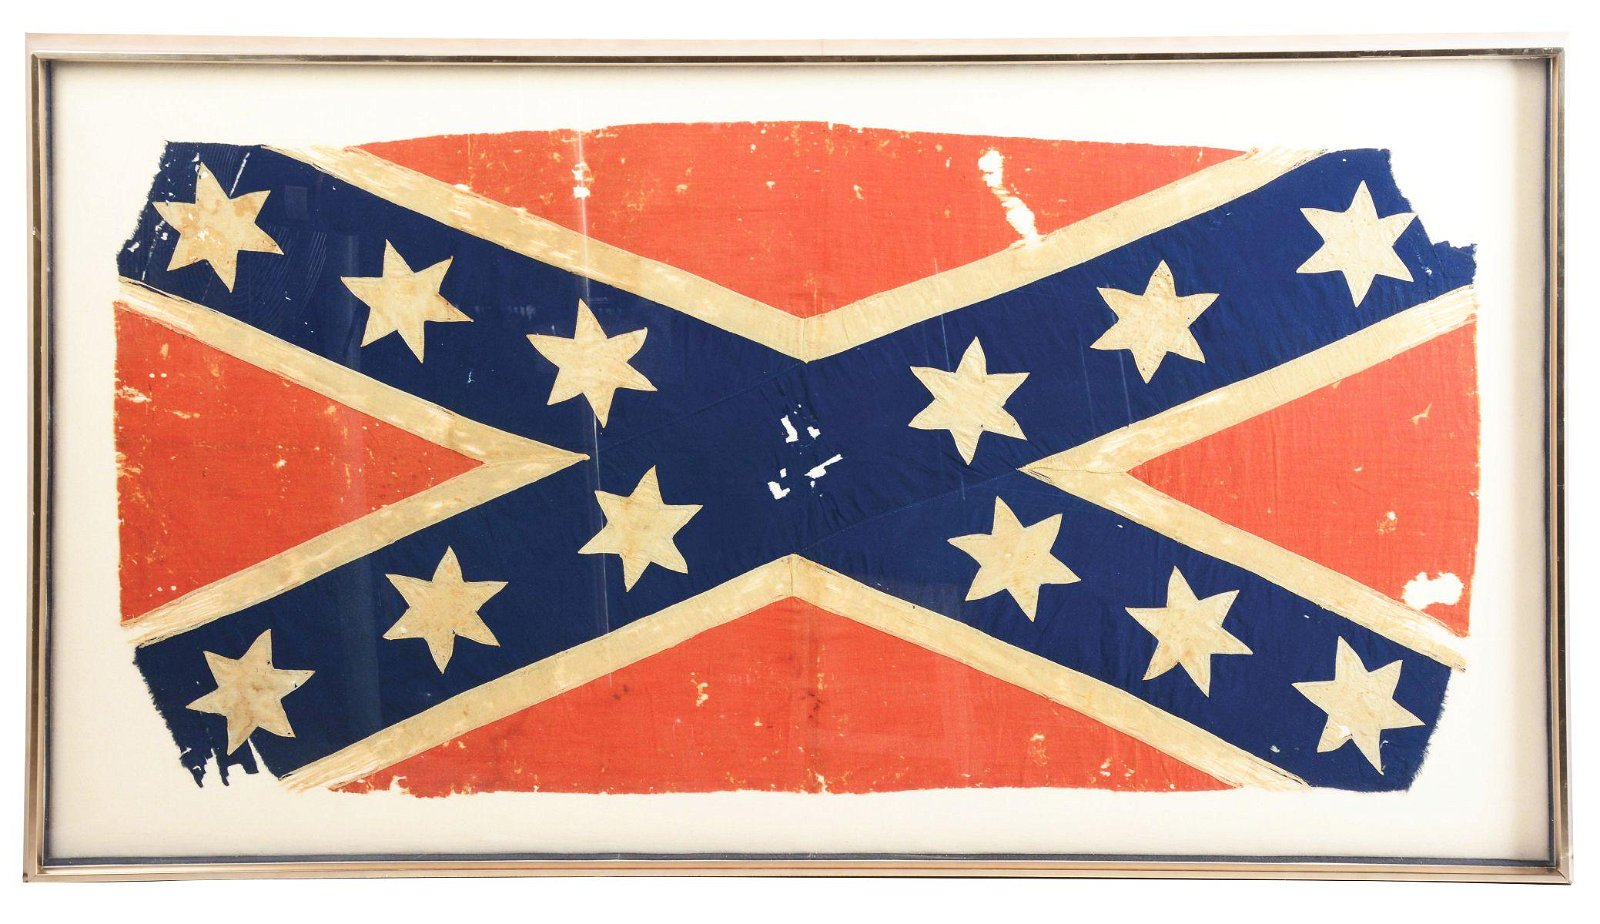 ARMY OF TENNESSEE CONFEDERATE BATTLE FLAG.